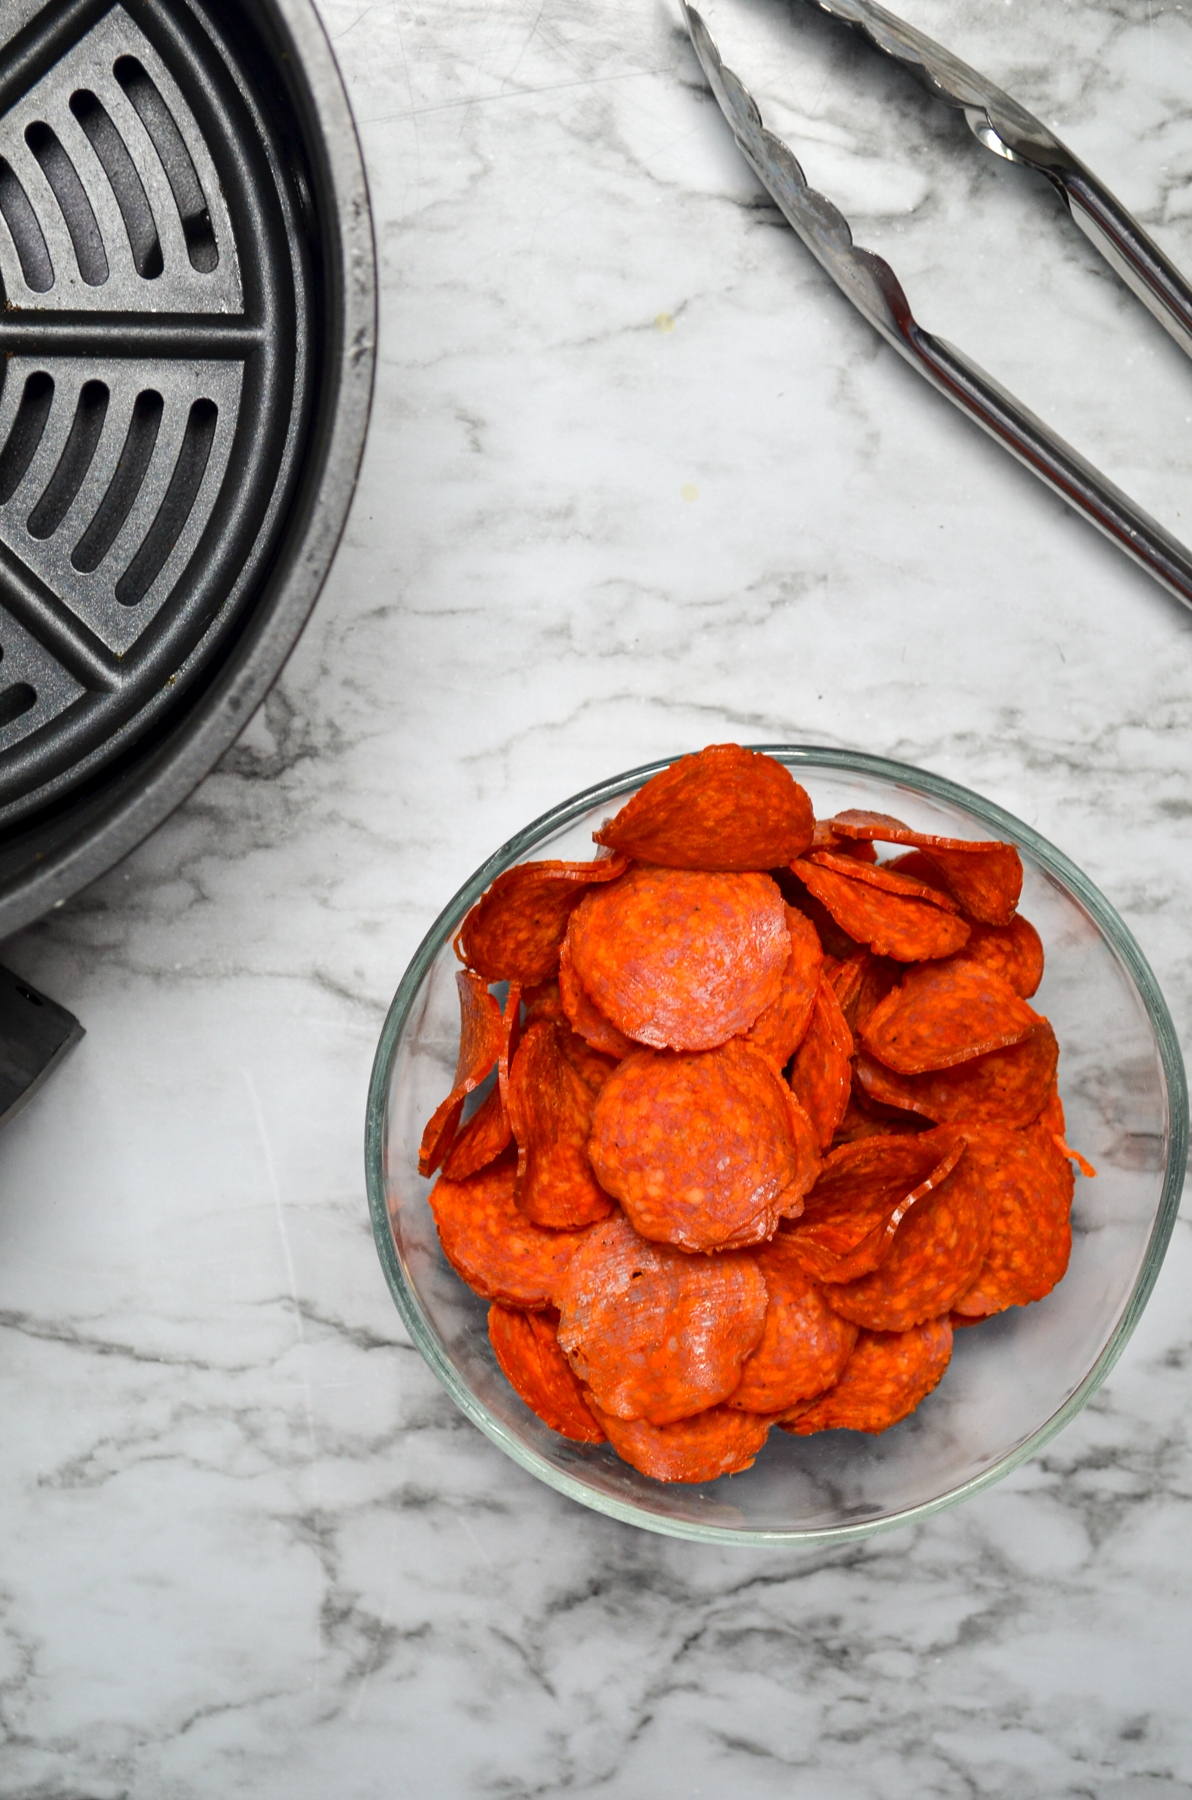 A bowl of pepperoni, with an air fryer basket and a pair of tongs on the side.